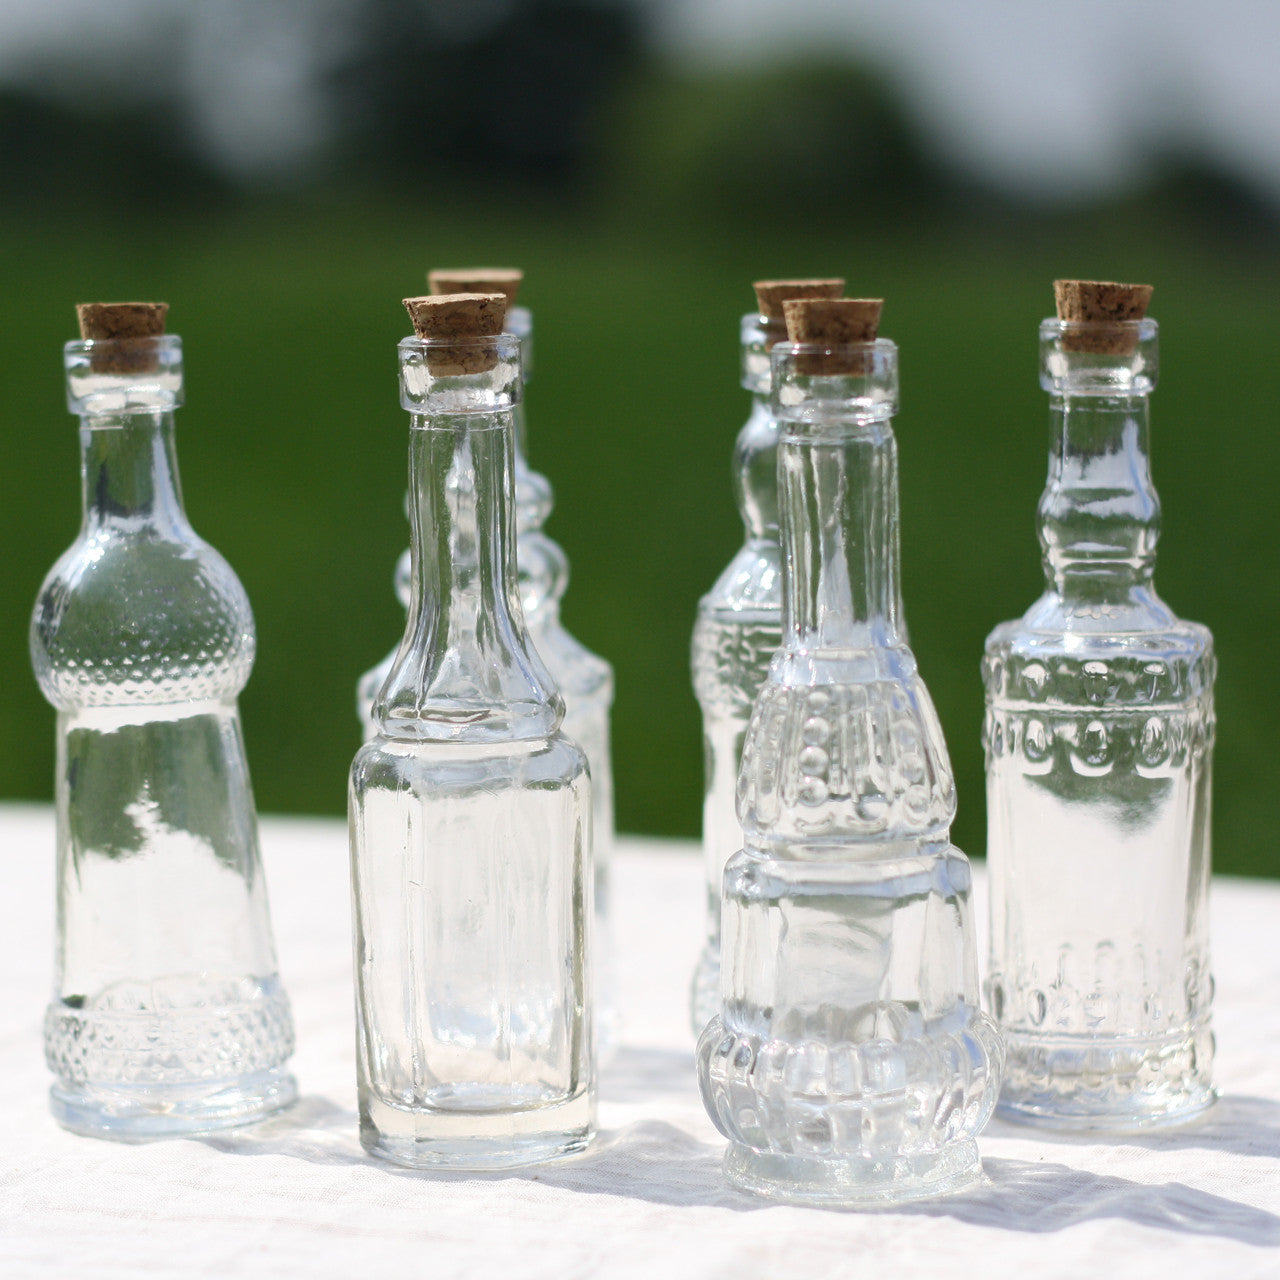 set of 6 glass bottle vases with cork stoppers pre order for